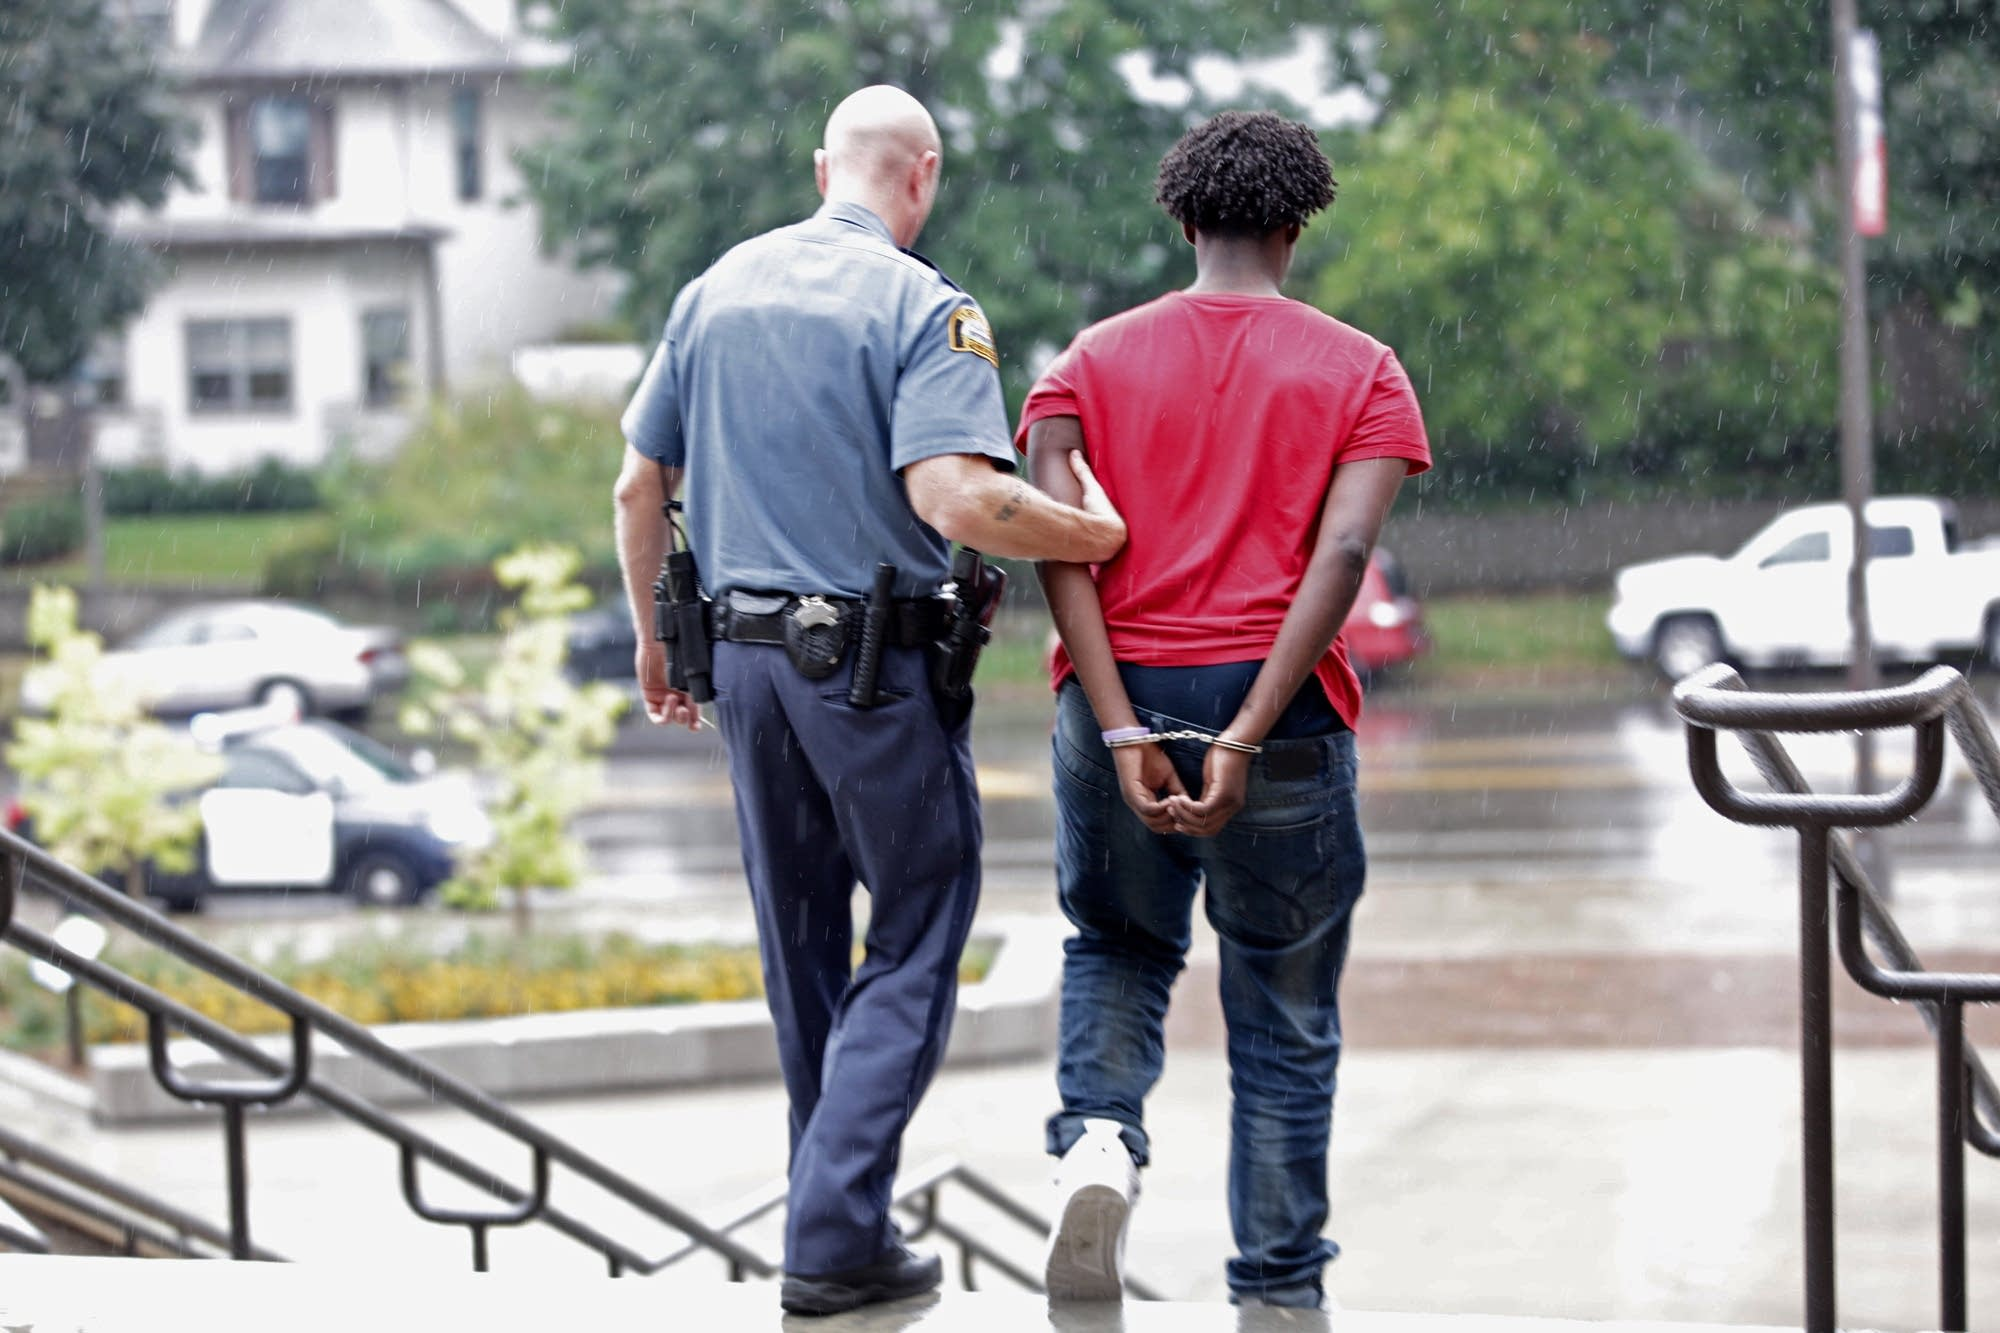 A St. Paul Central High student is escorted out of the school in handcuffs.